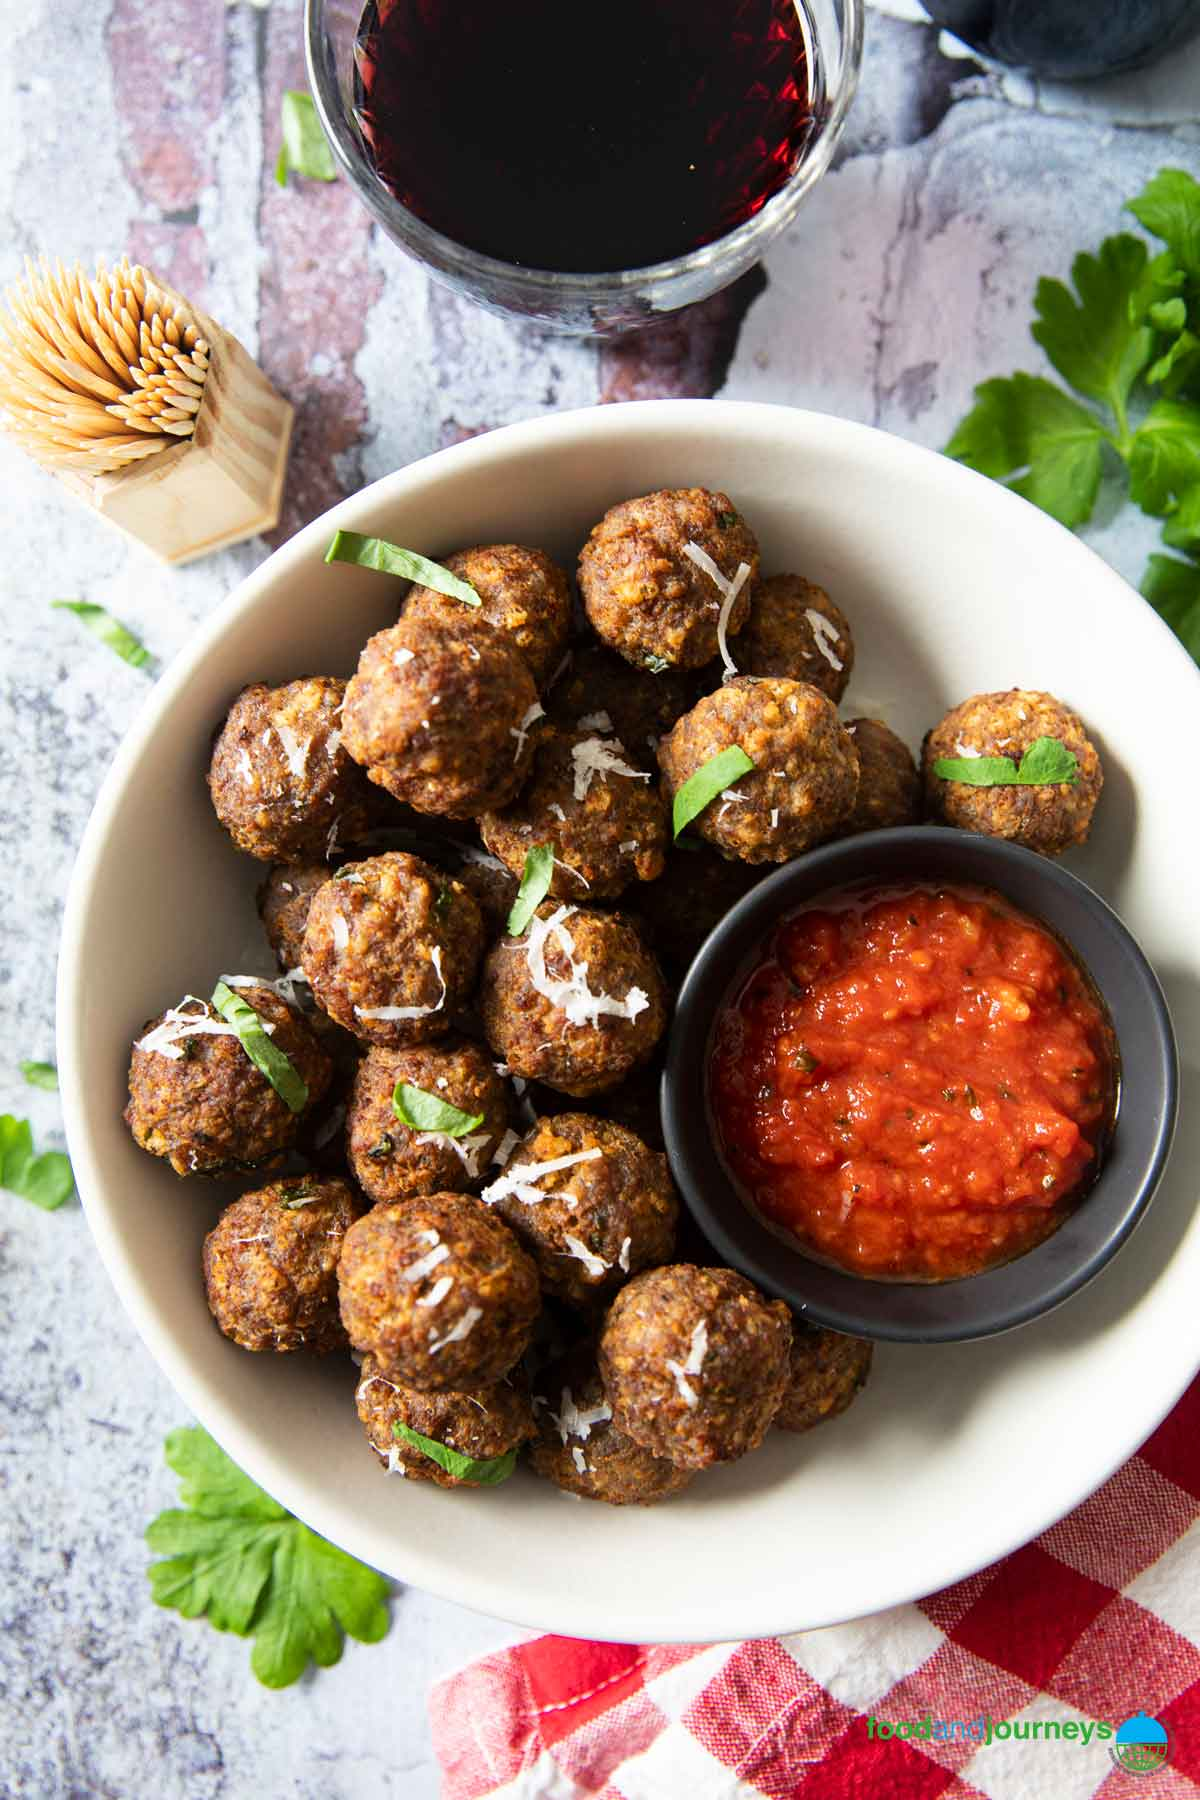 An overhead shot of a plate of mini meatballs served for appetizer, with some toothpicks and a glass of wine on the side.